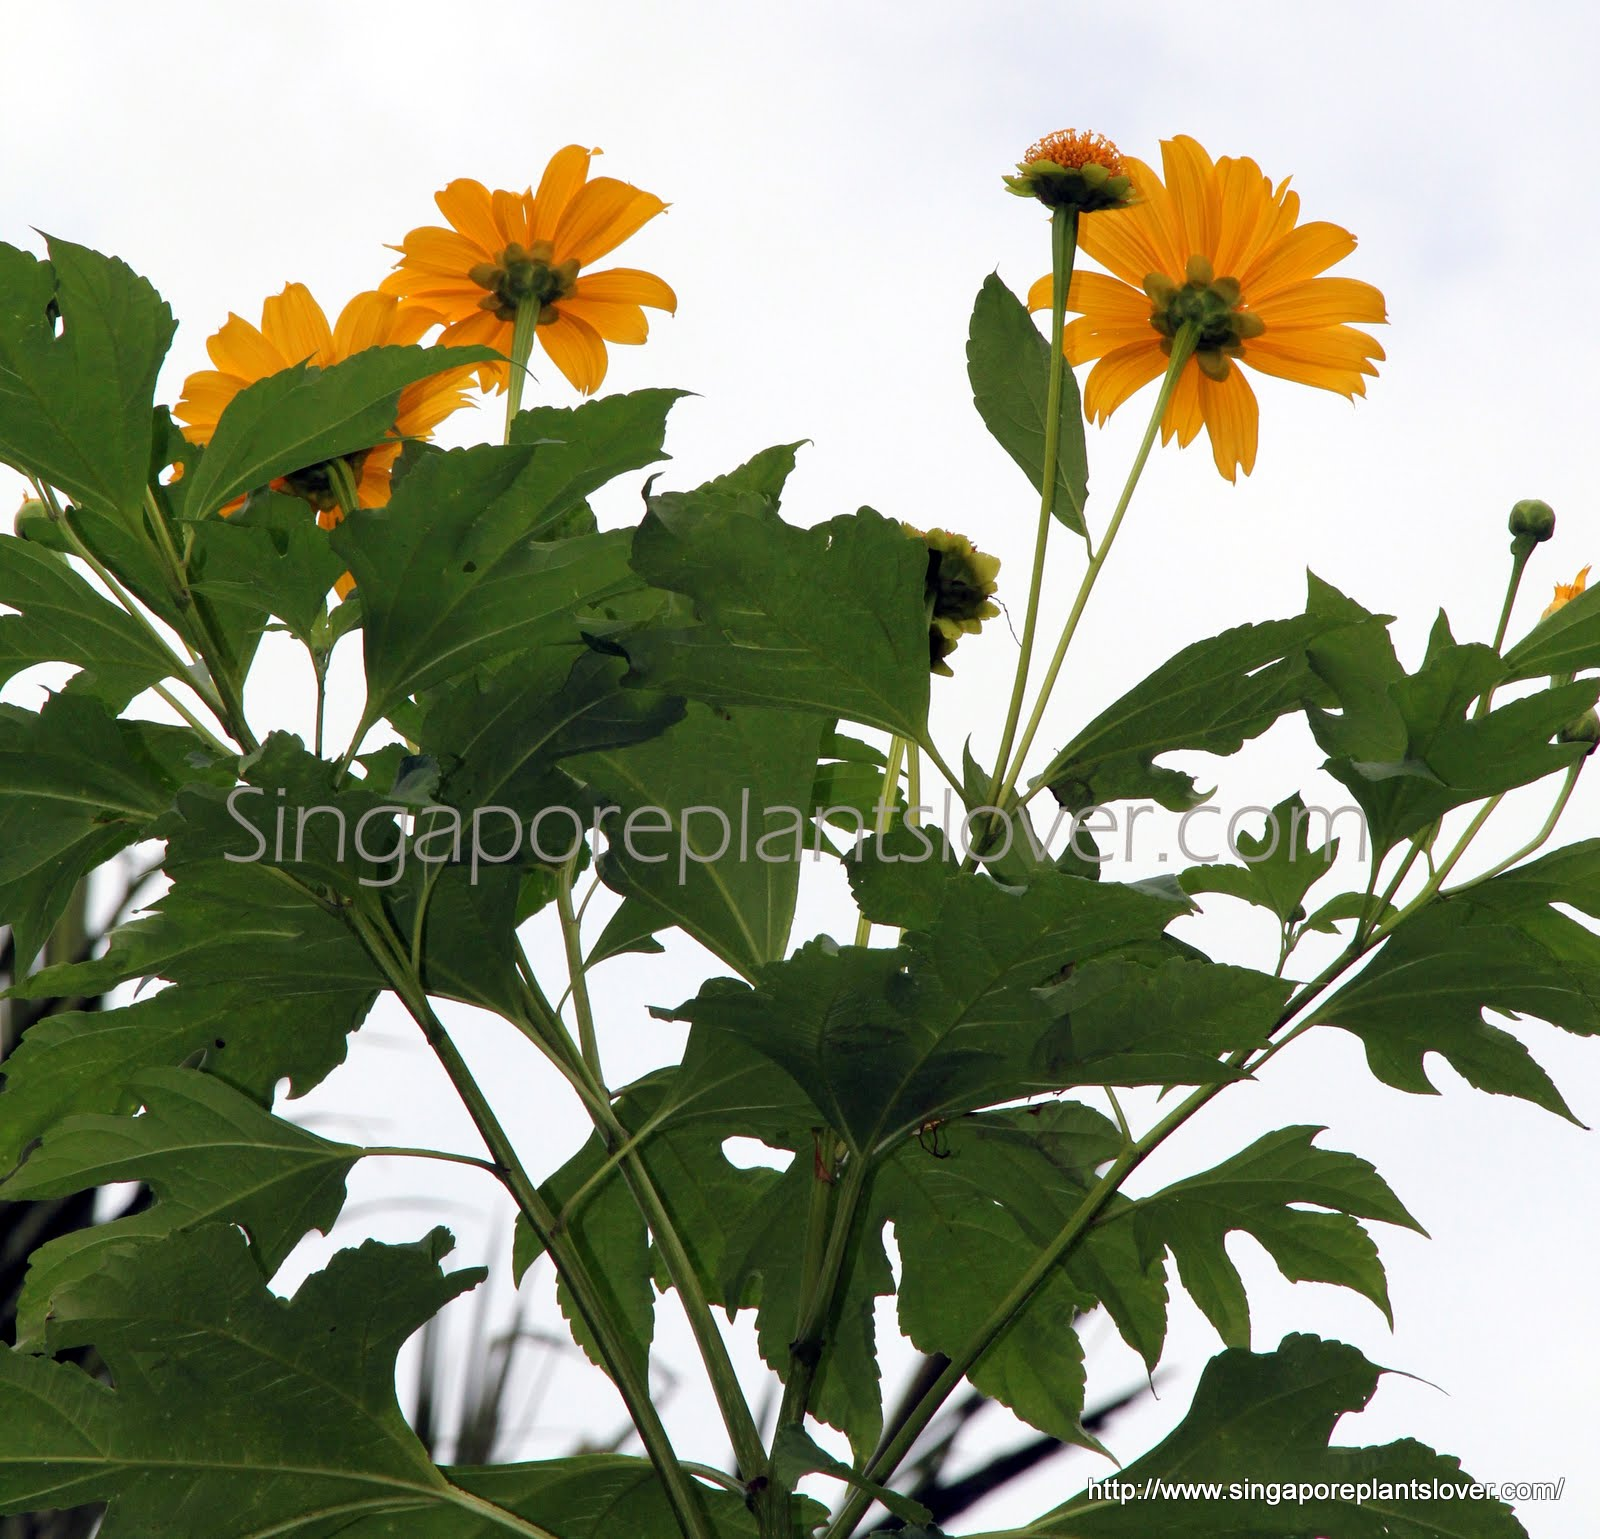 Singapore plants lover abc wednesday yellow flowers not sure what is the name of this plants bright cheerful flowers look like mini sunflowers or daisy but the plant is growing like shrub about 2 meter izmirmasajfo